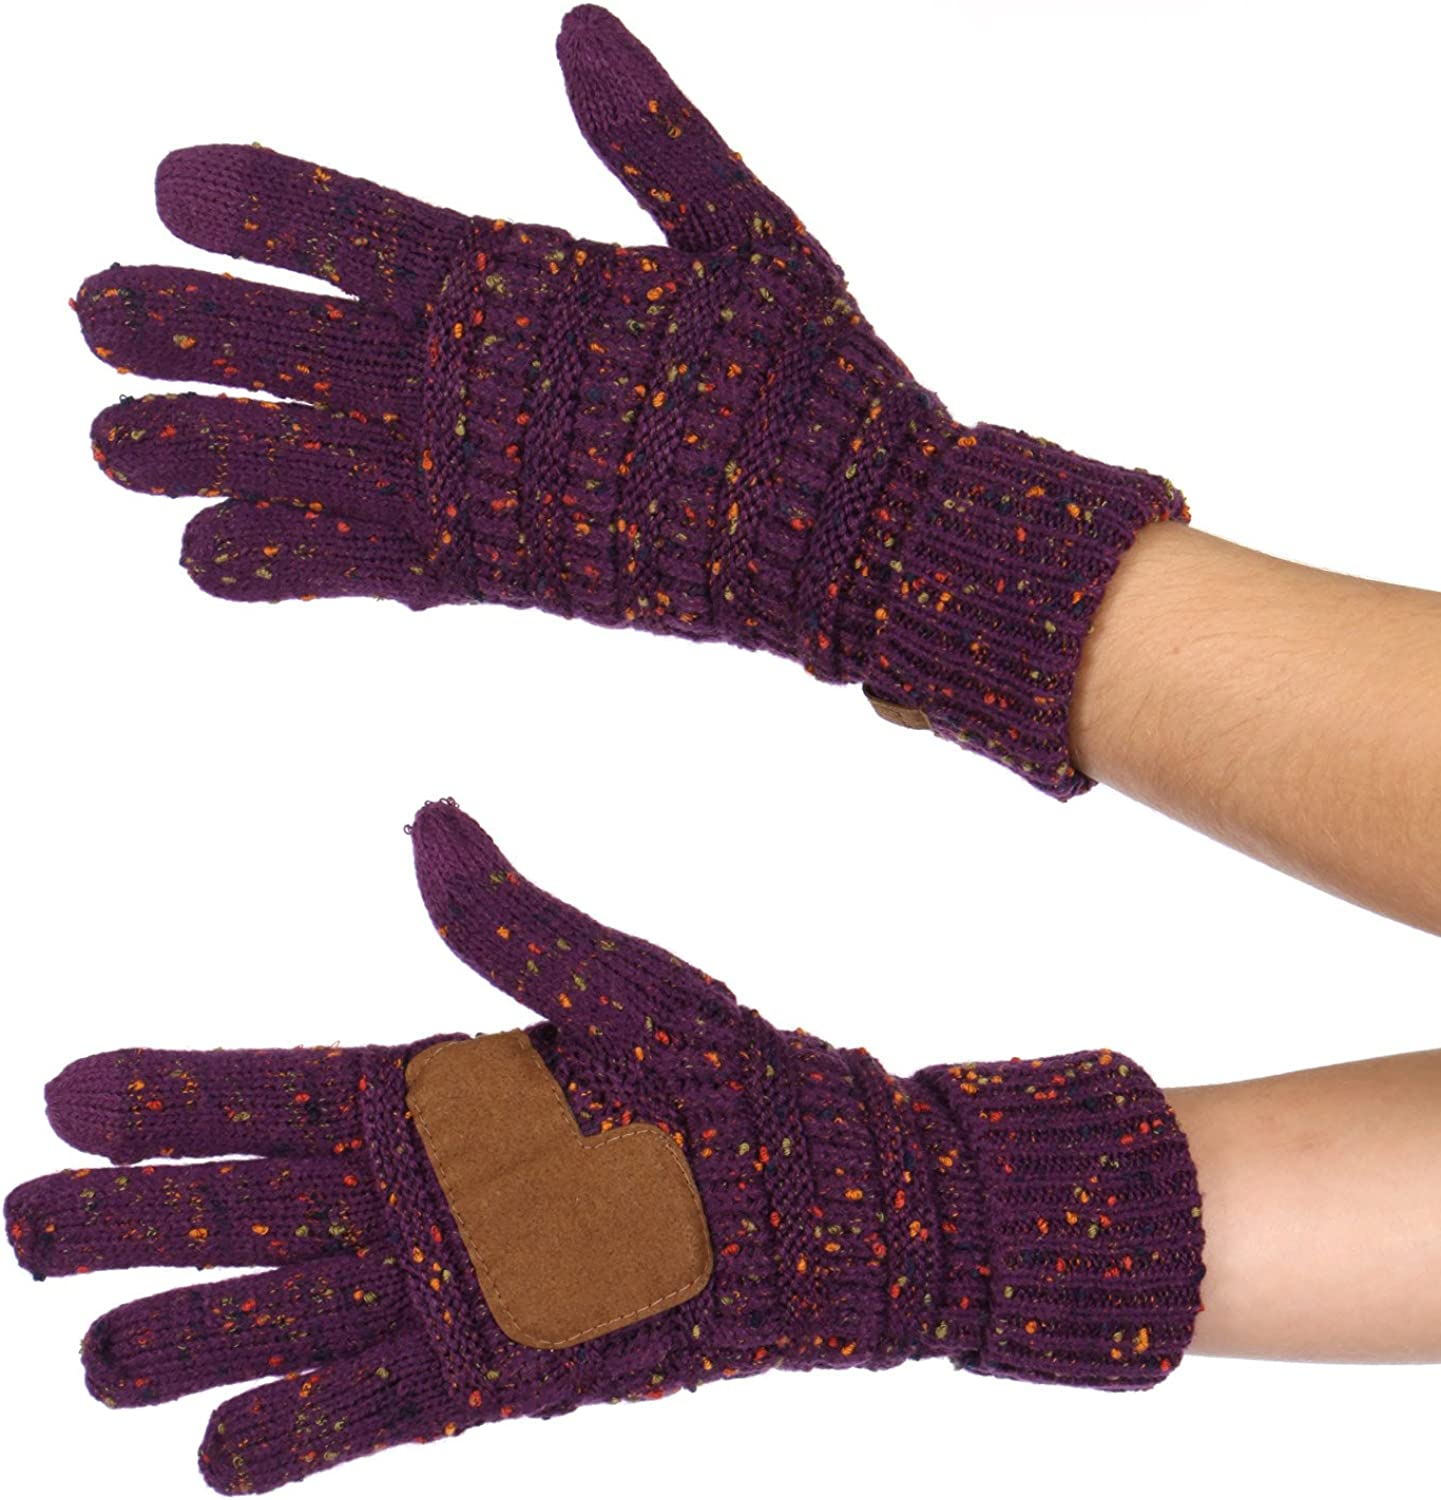 Touchscreen gloves women. Warm winter texting gloves Cable Knit. Authentic CC Gloves. Non slip faux suede palm.